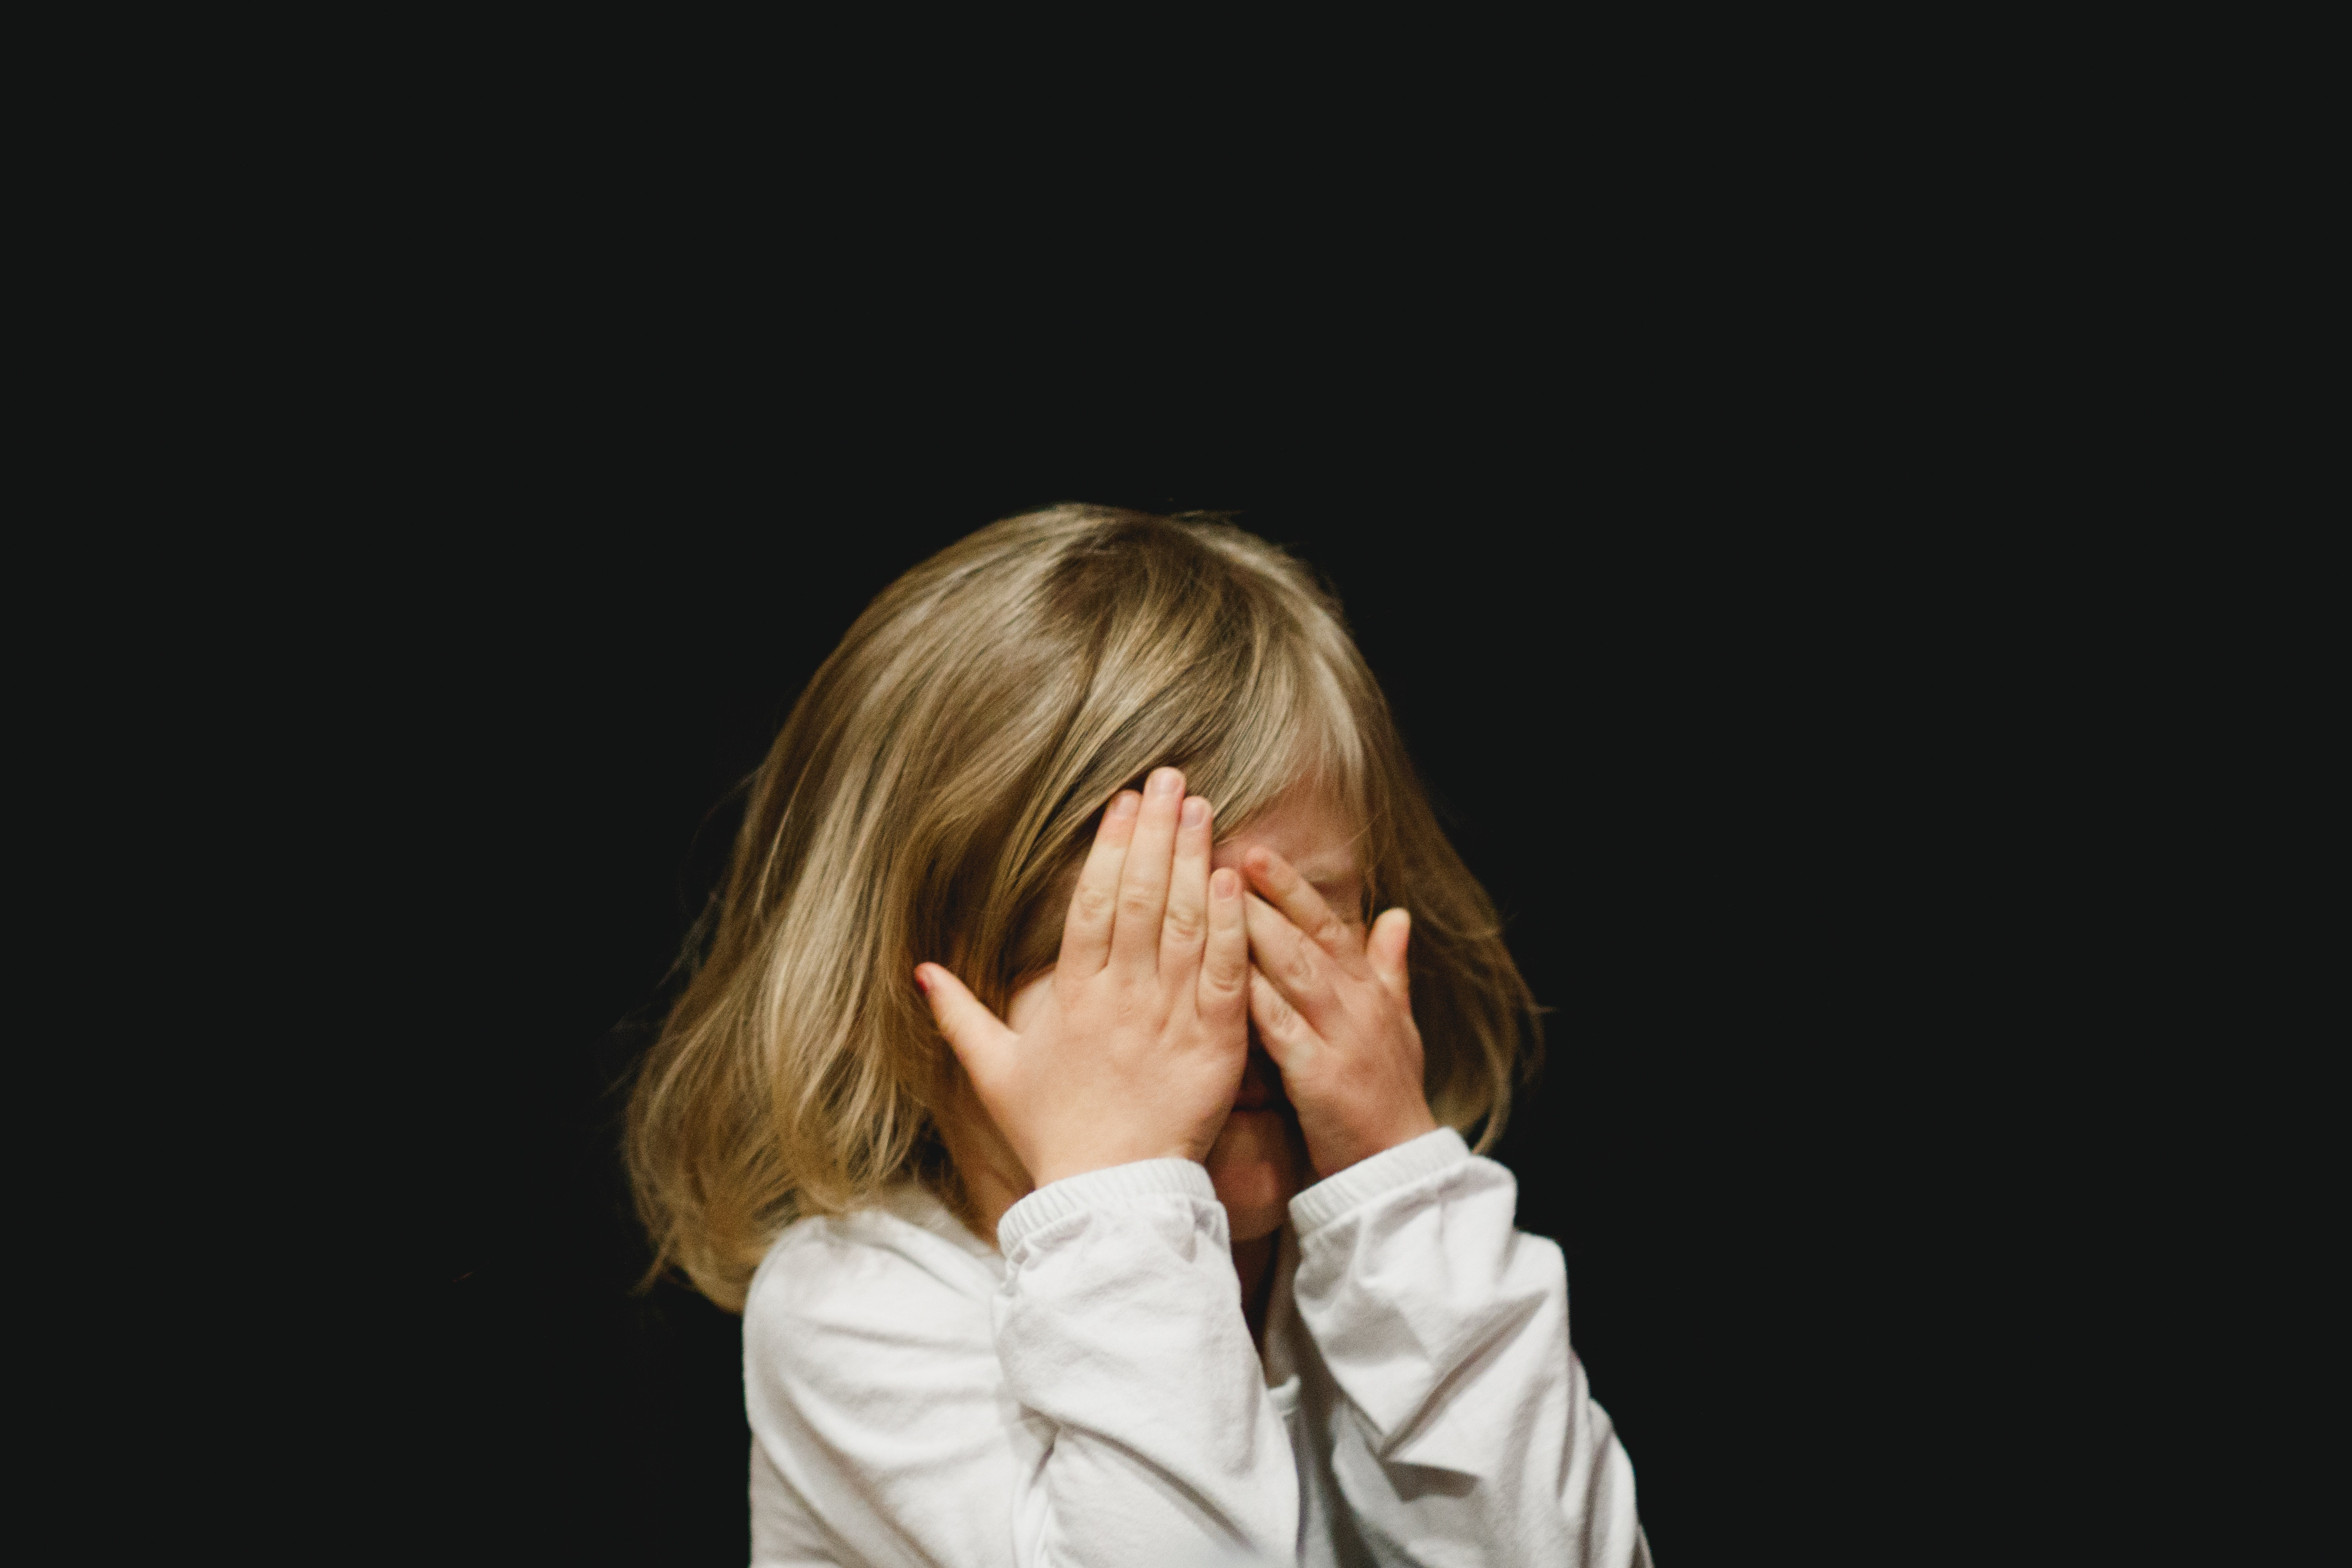 Scared little girl with hands over her eyes